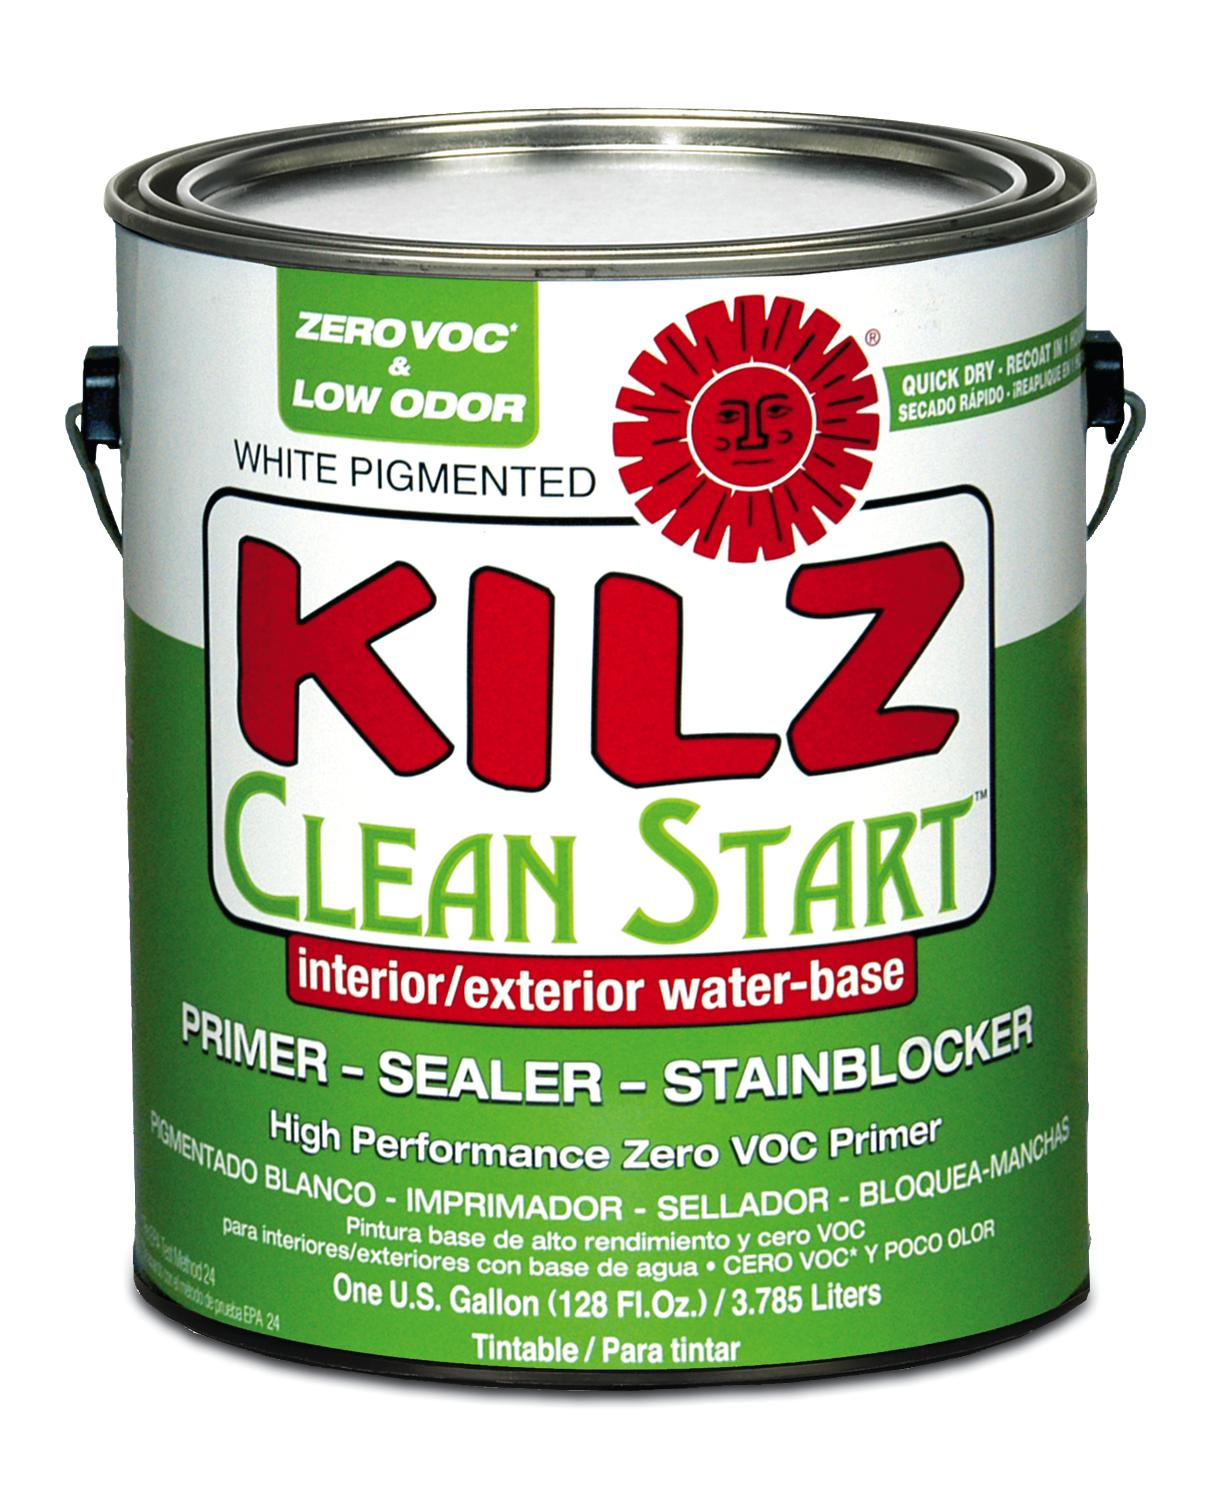 Masterchem Industries Kilz Clean Start Primer Remodeling Paints Walls Interiors Indoor